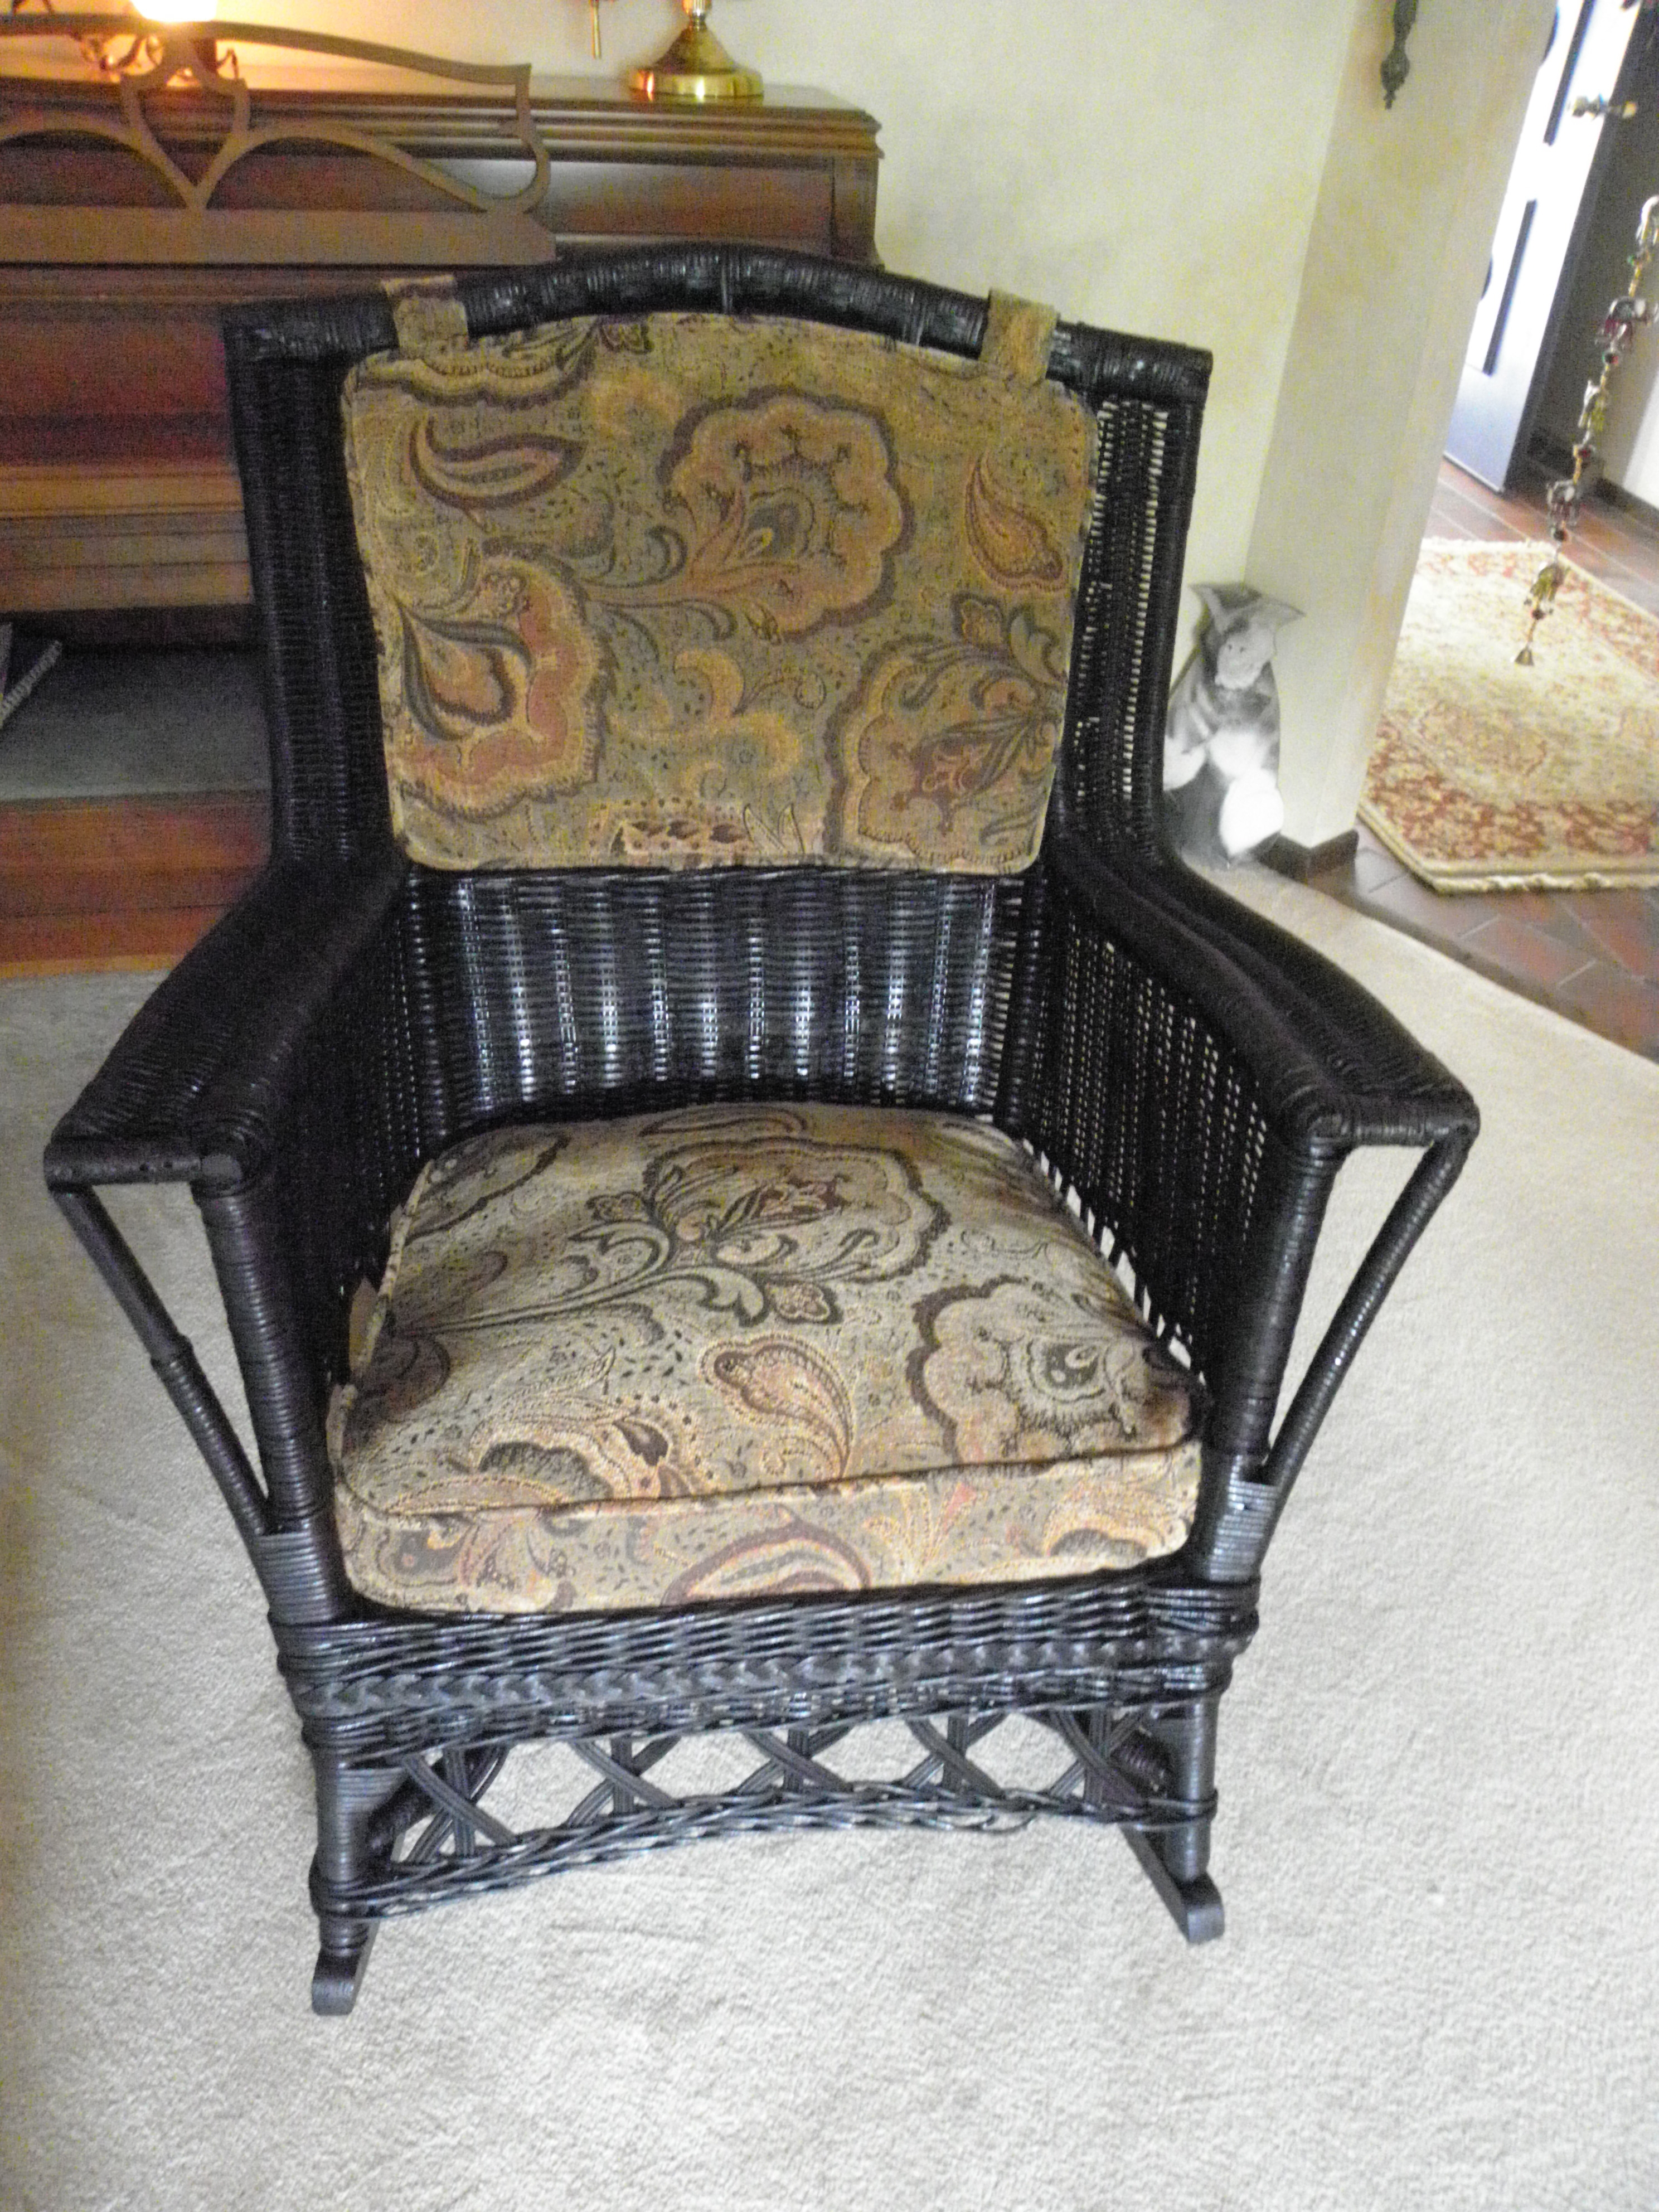 Antique Wicker Rocking Chair With Springs | Best Home Chair Decoration Throughout Rocking Chairs With Springs (#5 of 15)